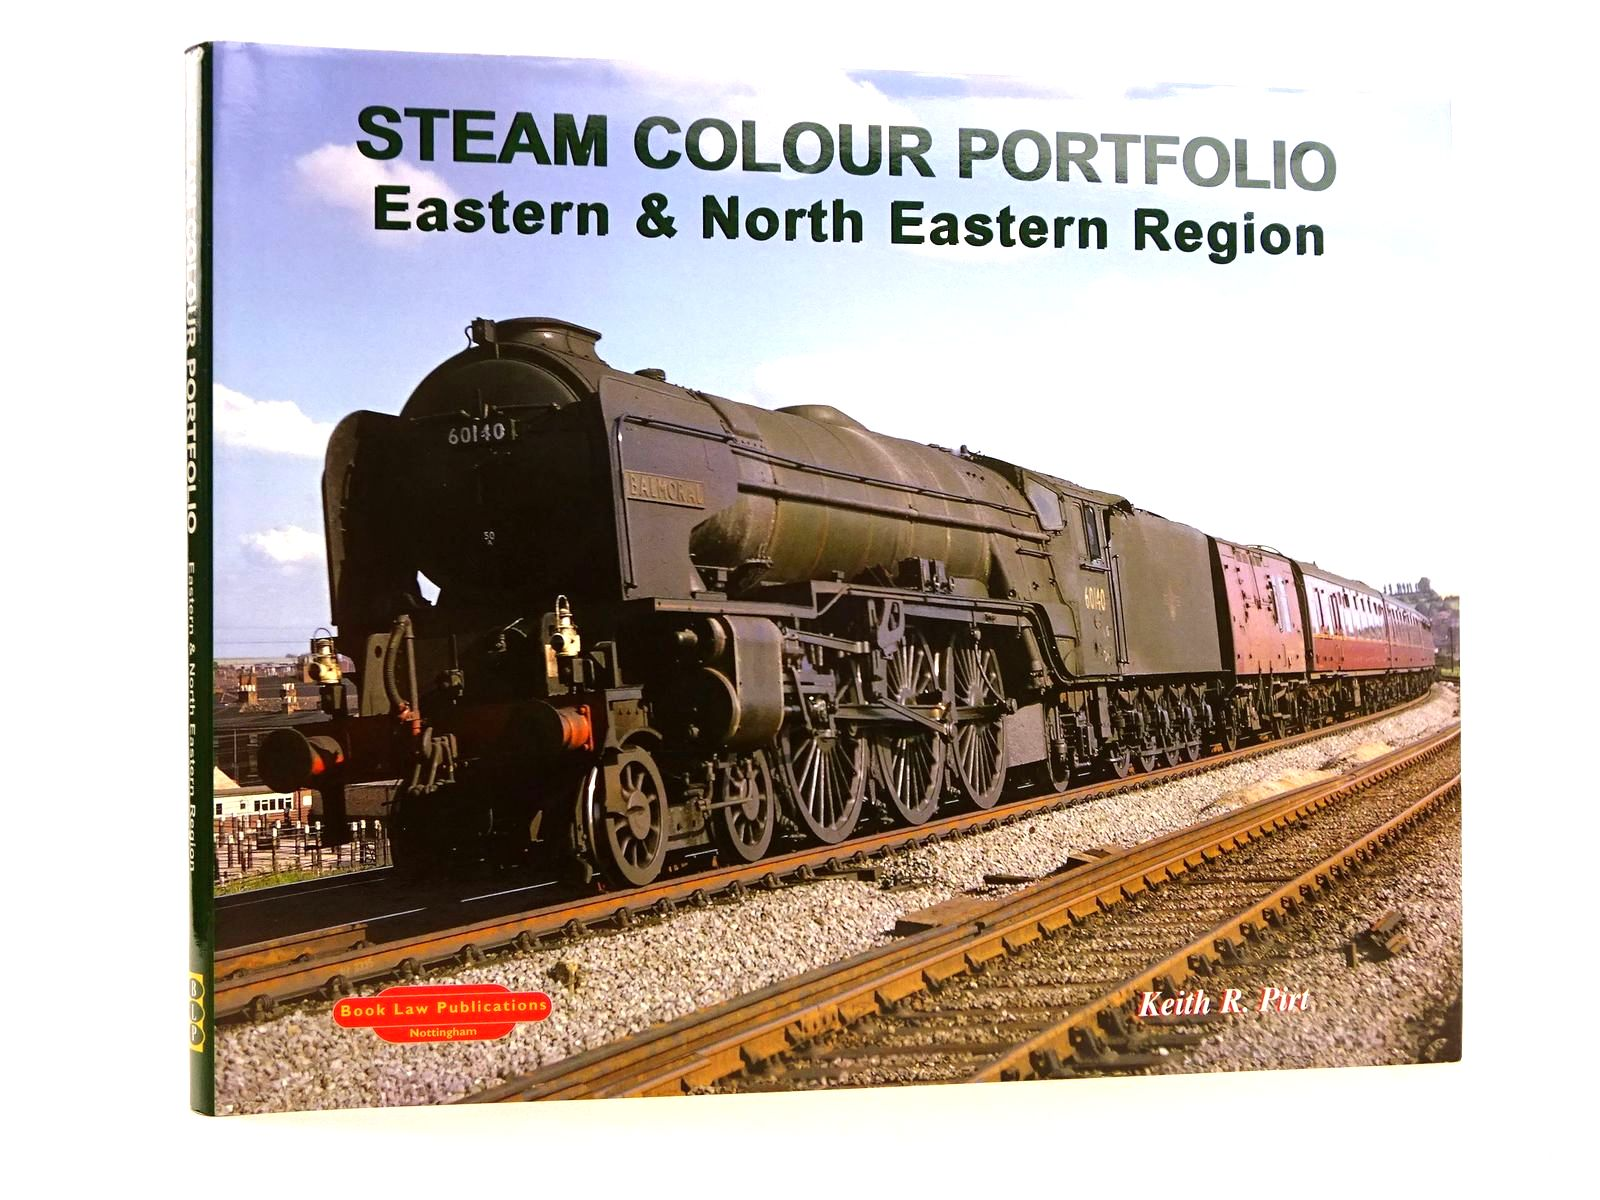 Photo of STEAM COLOUR PORTFOLIO EASTERN & NORTH EASTERN REGION VOLUME ONE written by Pirt, Keith R. published by Book Law Publications (STOCK CODE: 1818162)  for sale by Stella & Rose's Books